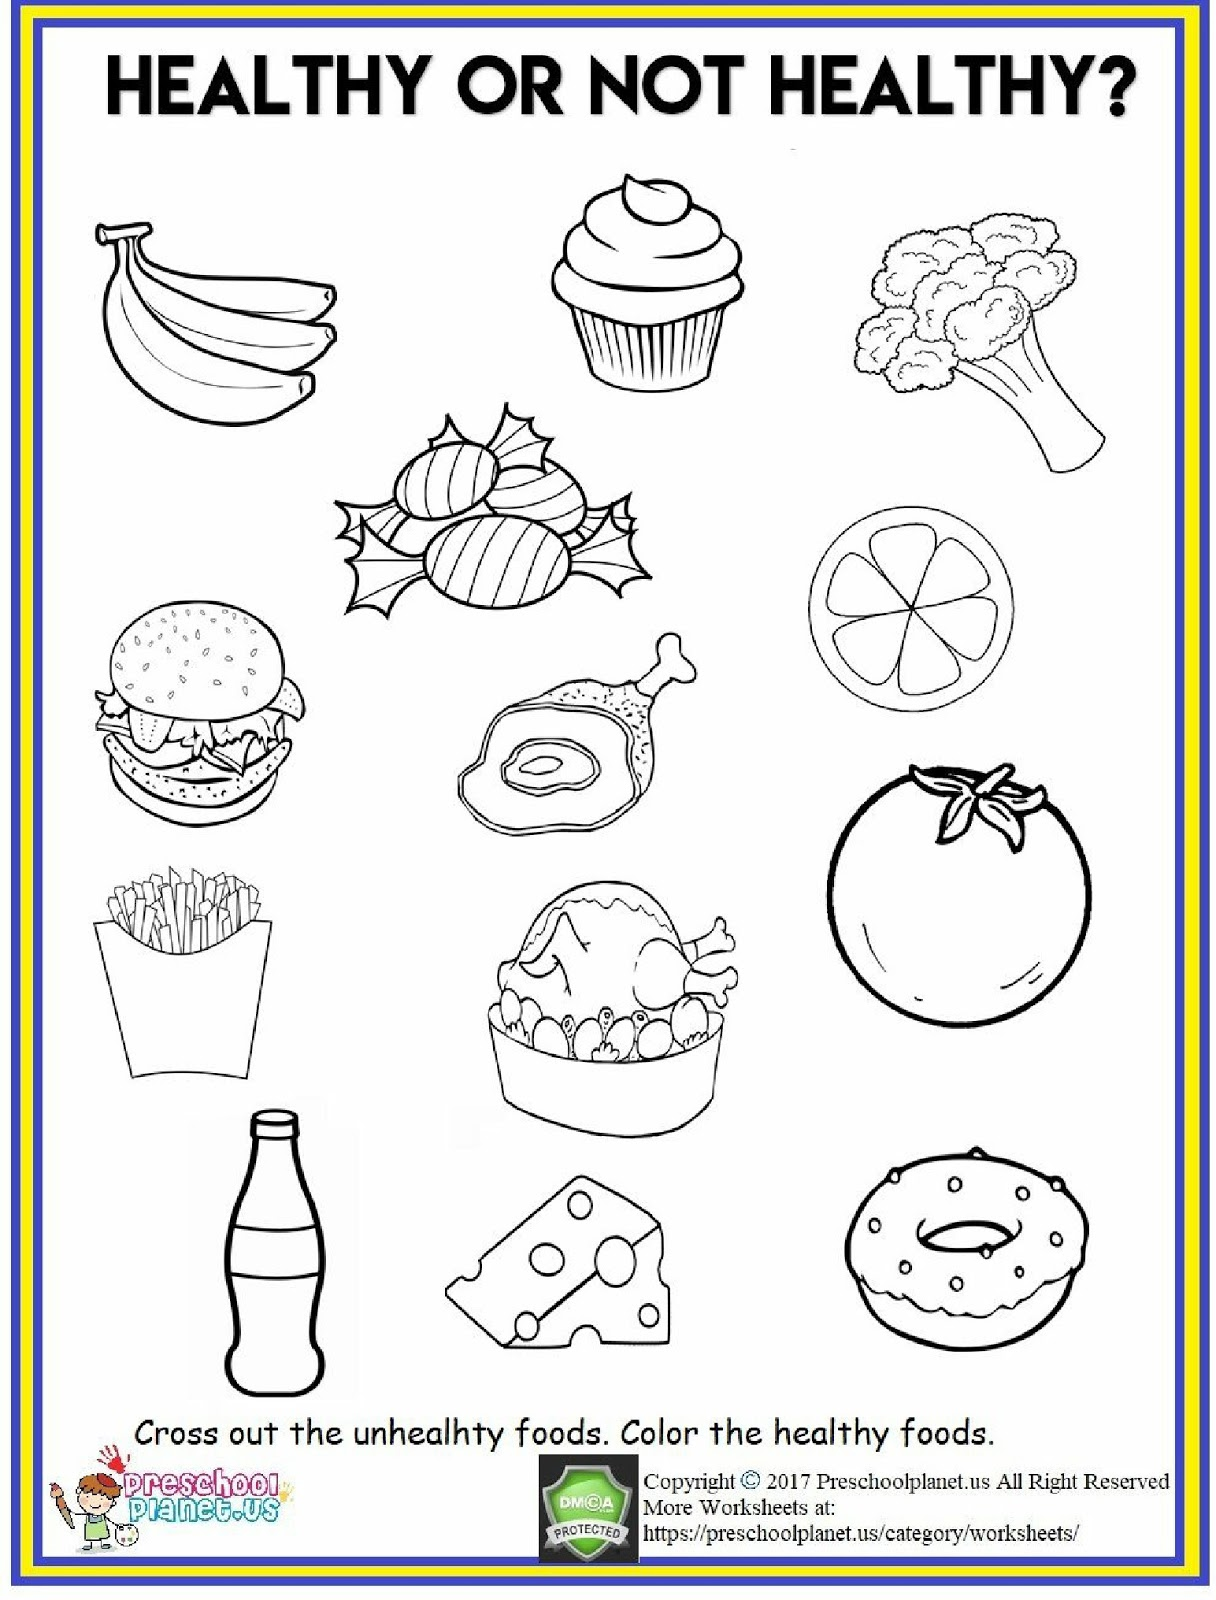 Healthy Food Worksheet 2019 - Malvorlage